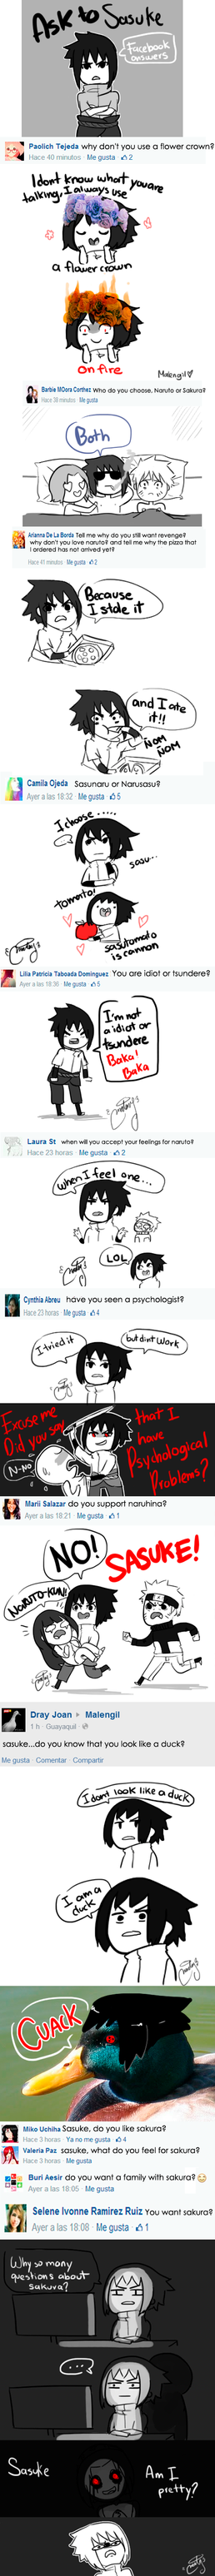 Ask to Sasuki facebook answers by malengil